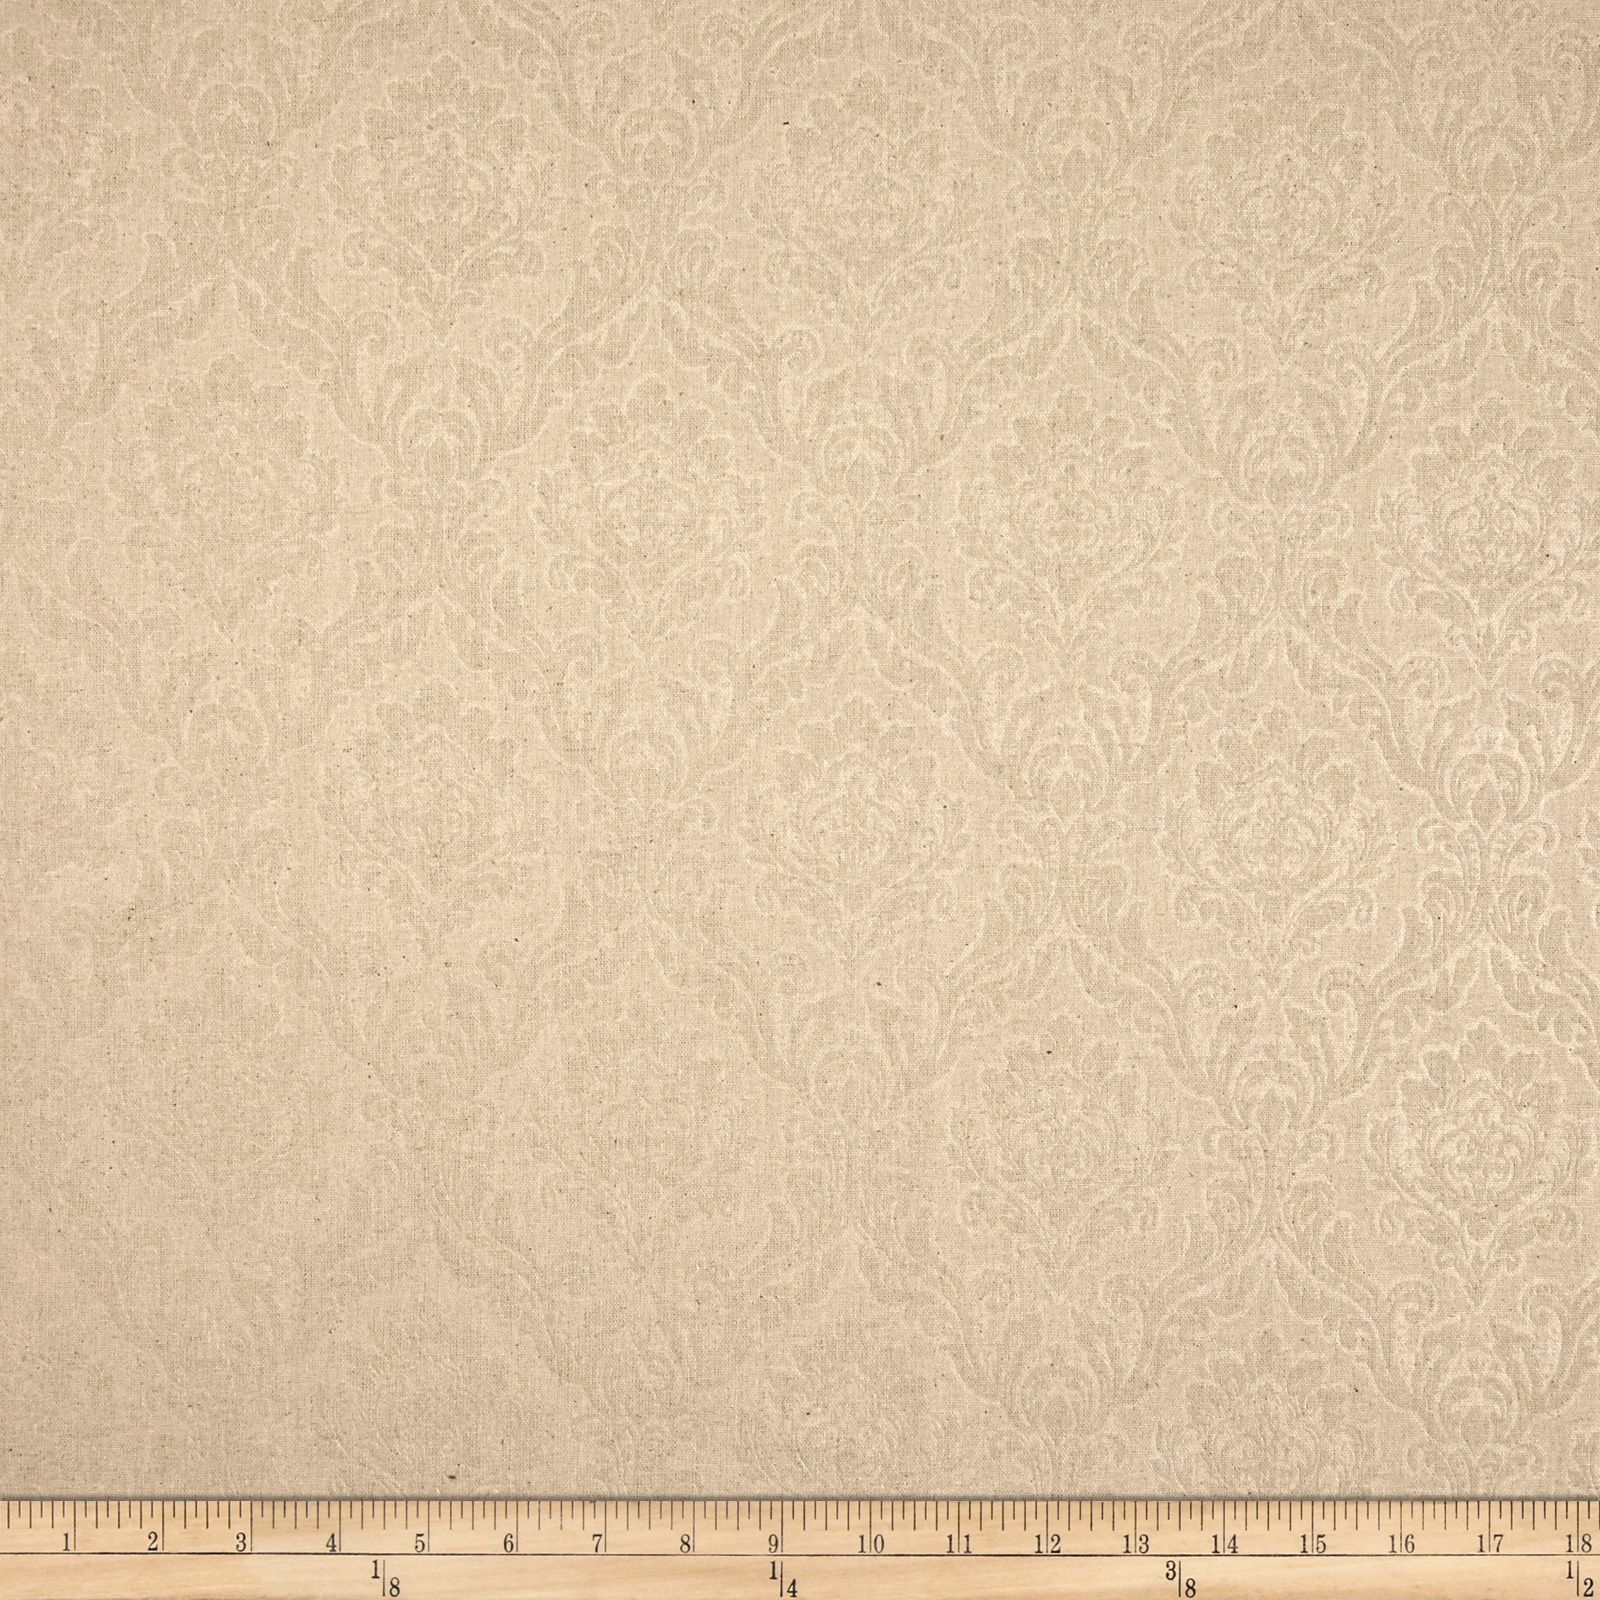 Espera Damask Linen Blend Natural Fabric